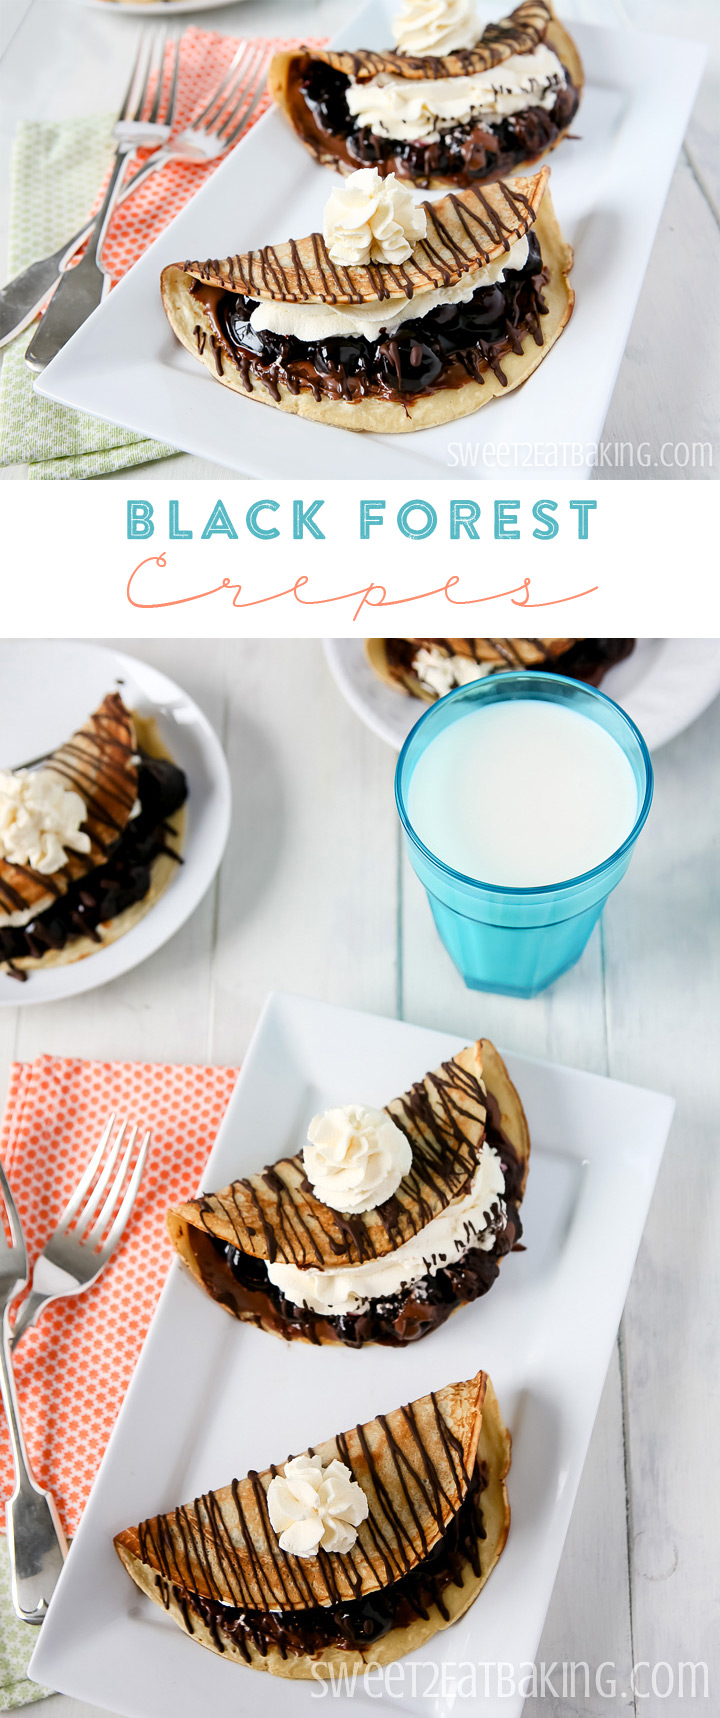 Black Forest Crepes with Nutella Recipe by Sweet2EatBaking.com